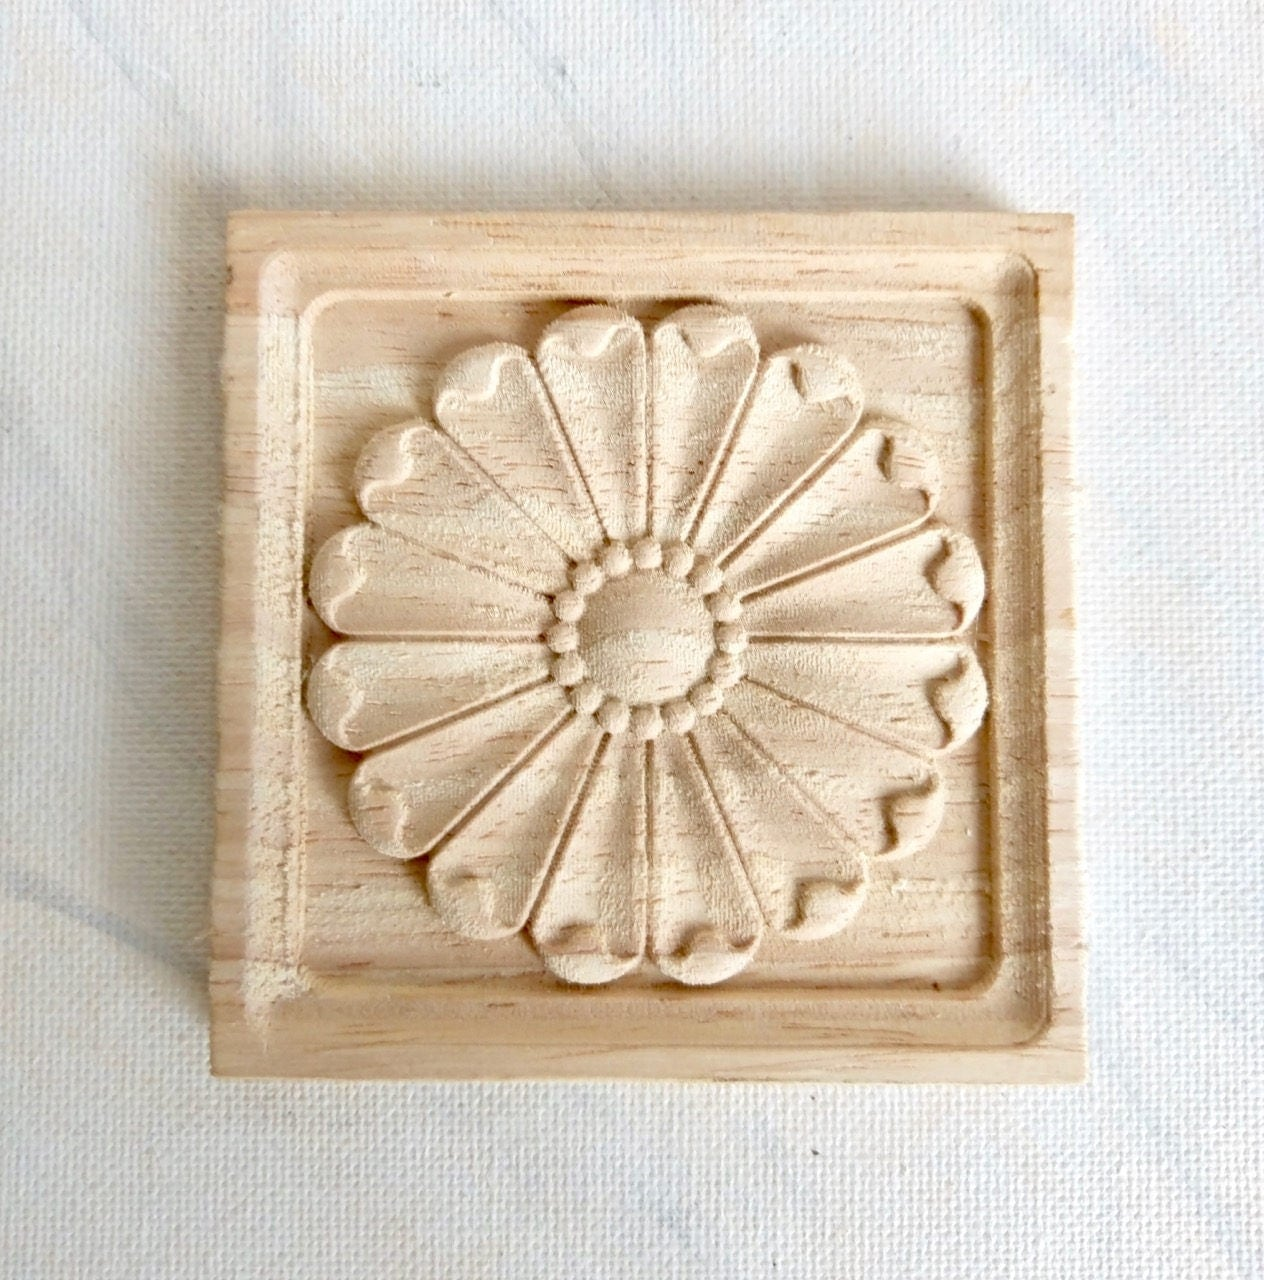 Square applique square rosette rosette applique wood for Applique furniture decoration